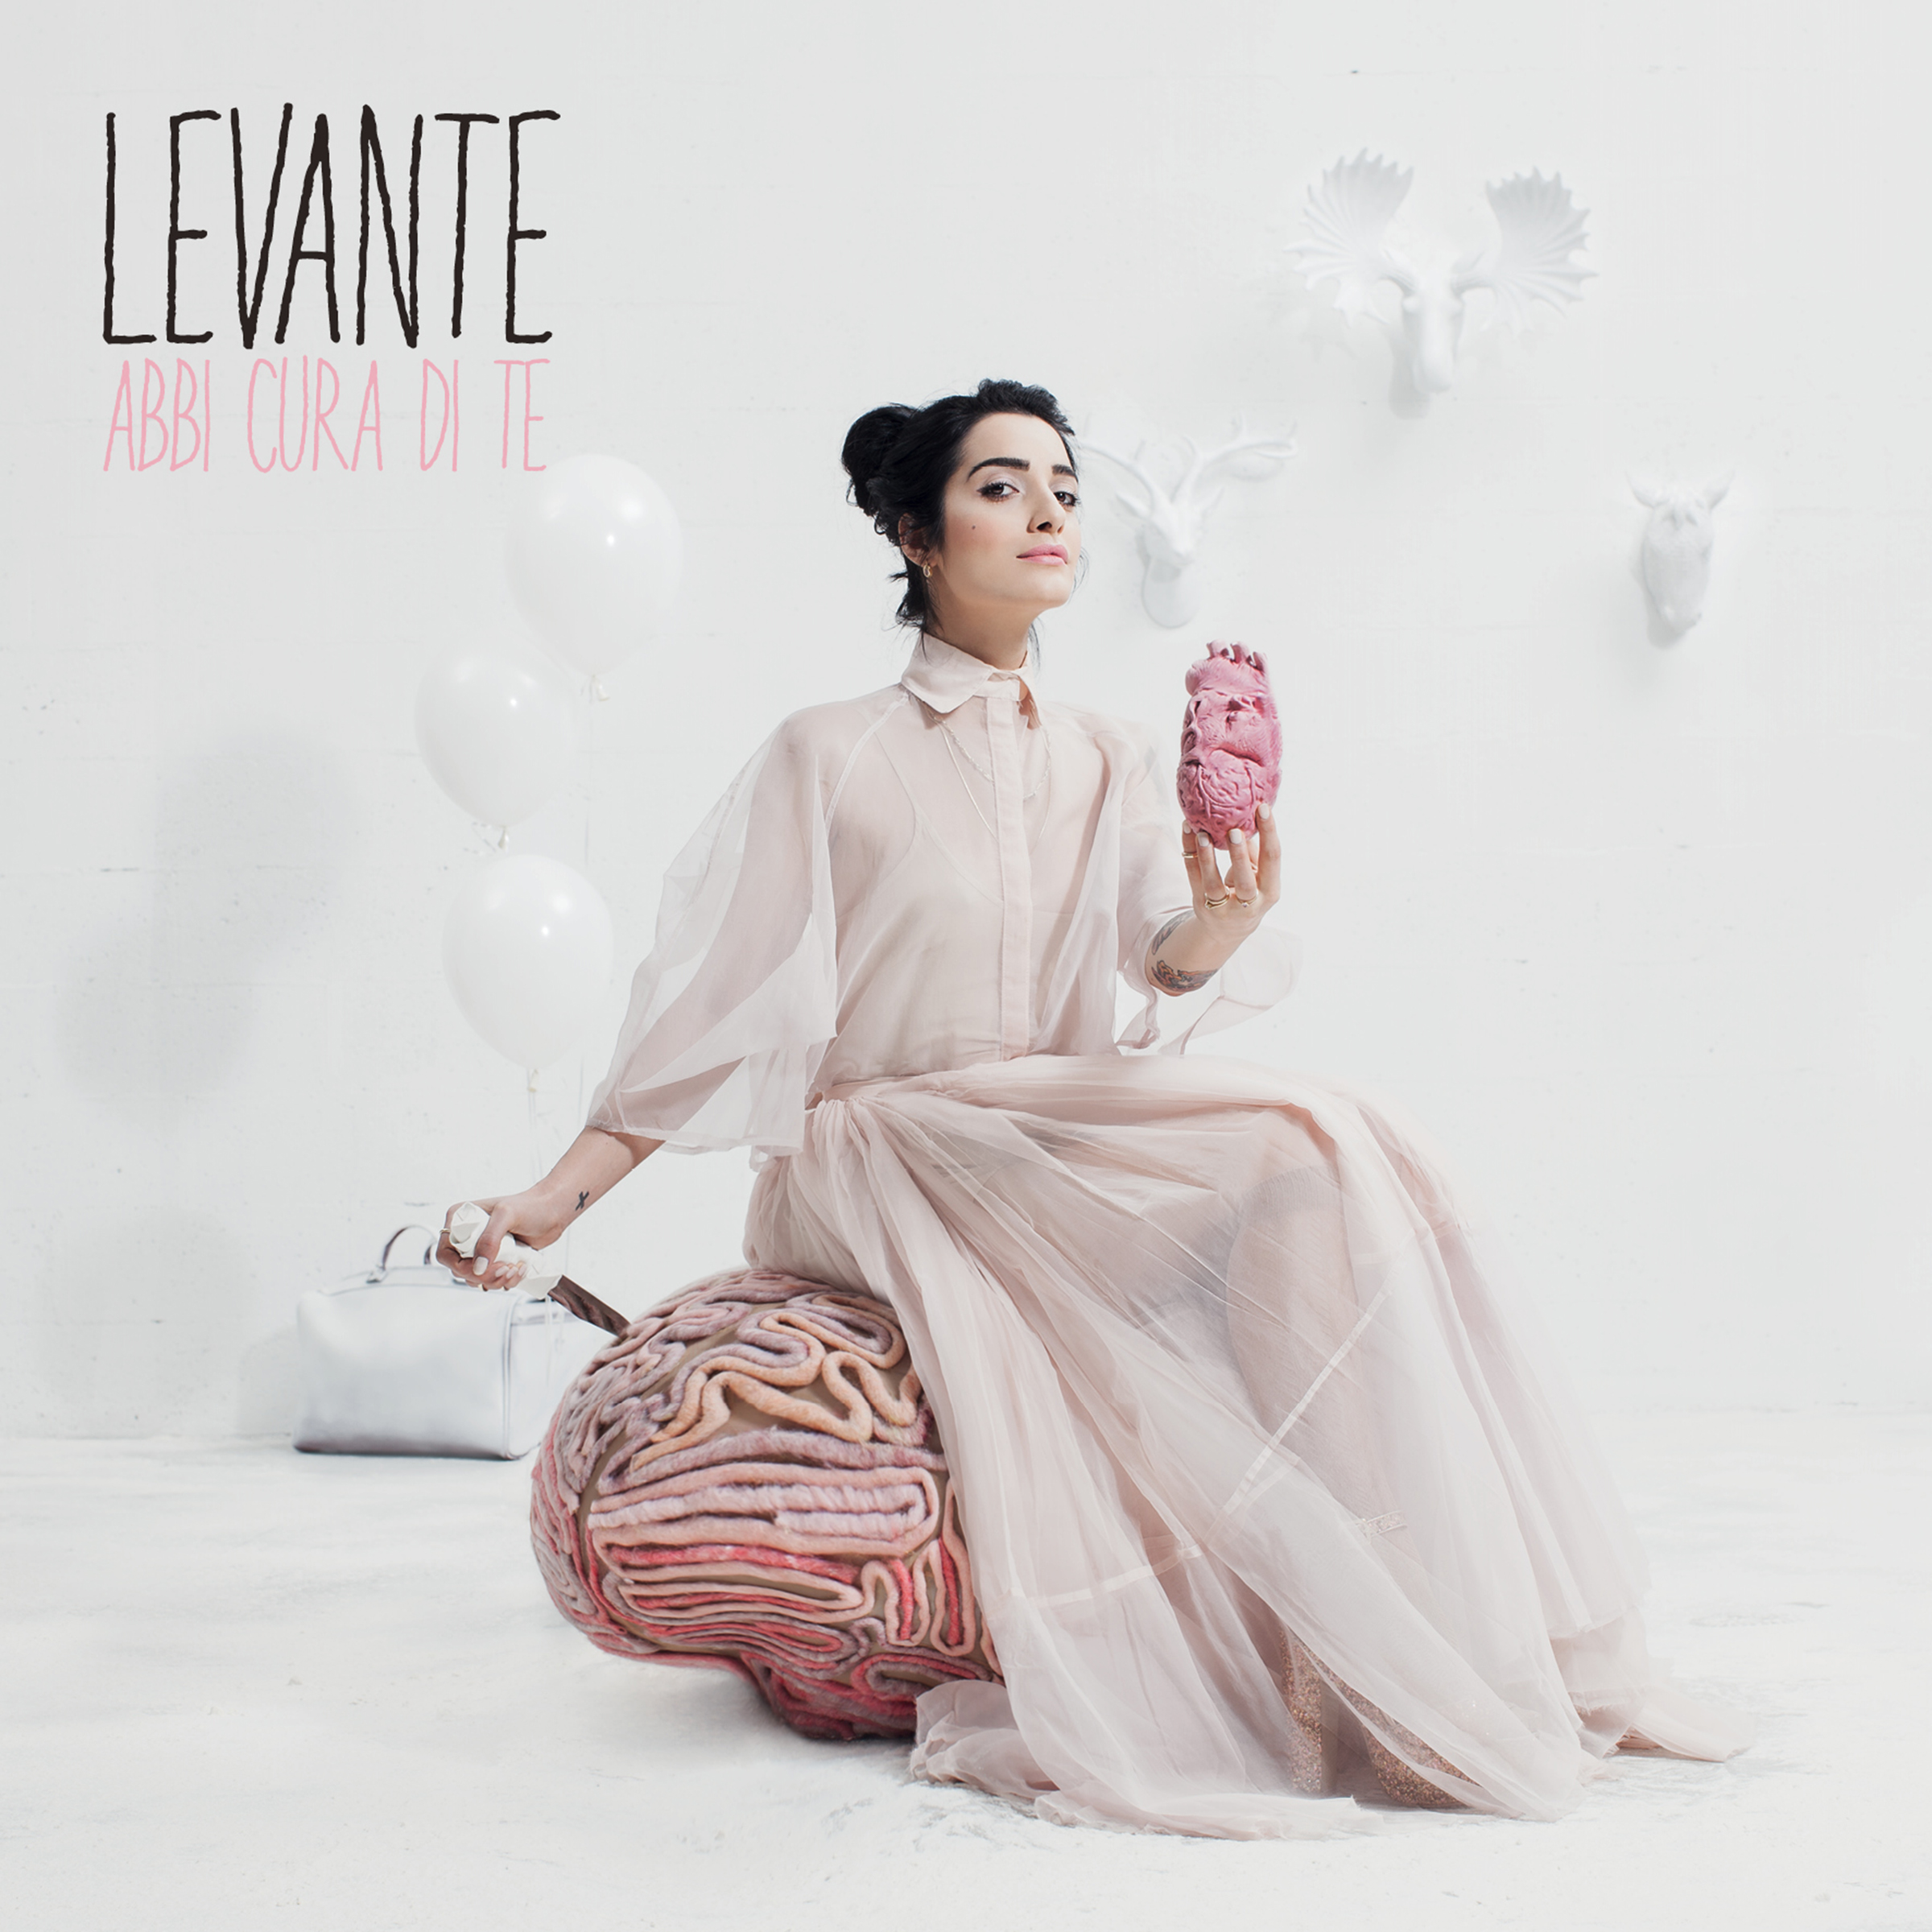 Levante_album_cover_web_2400 (1)